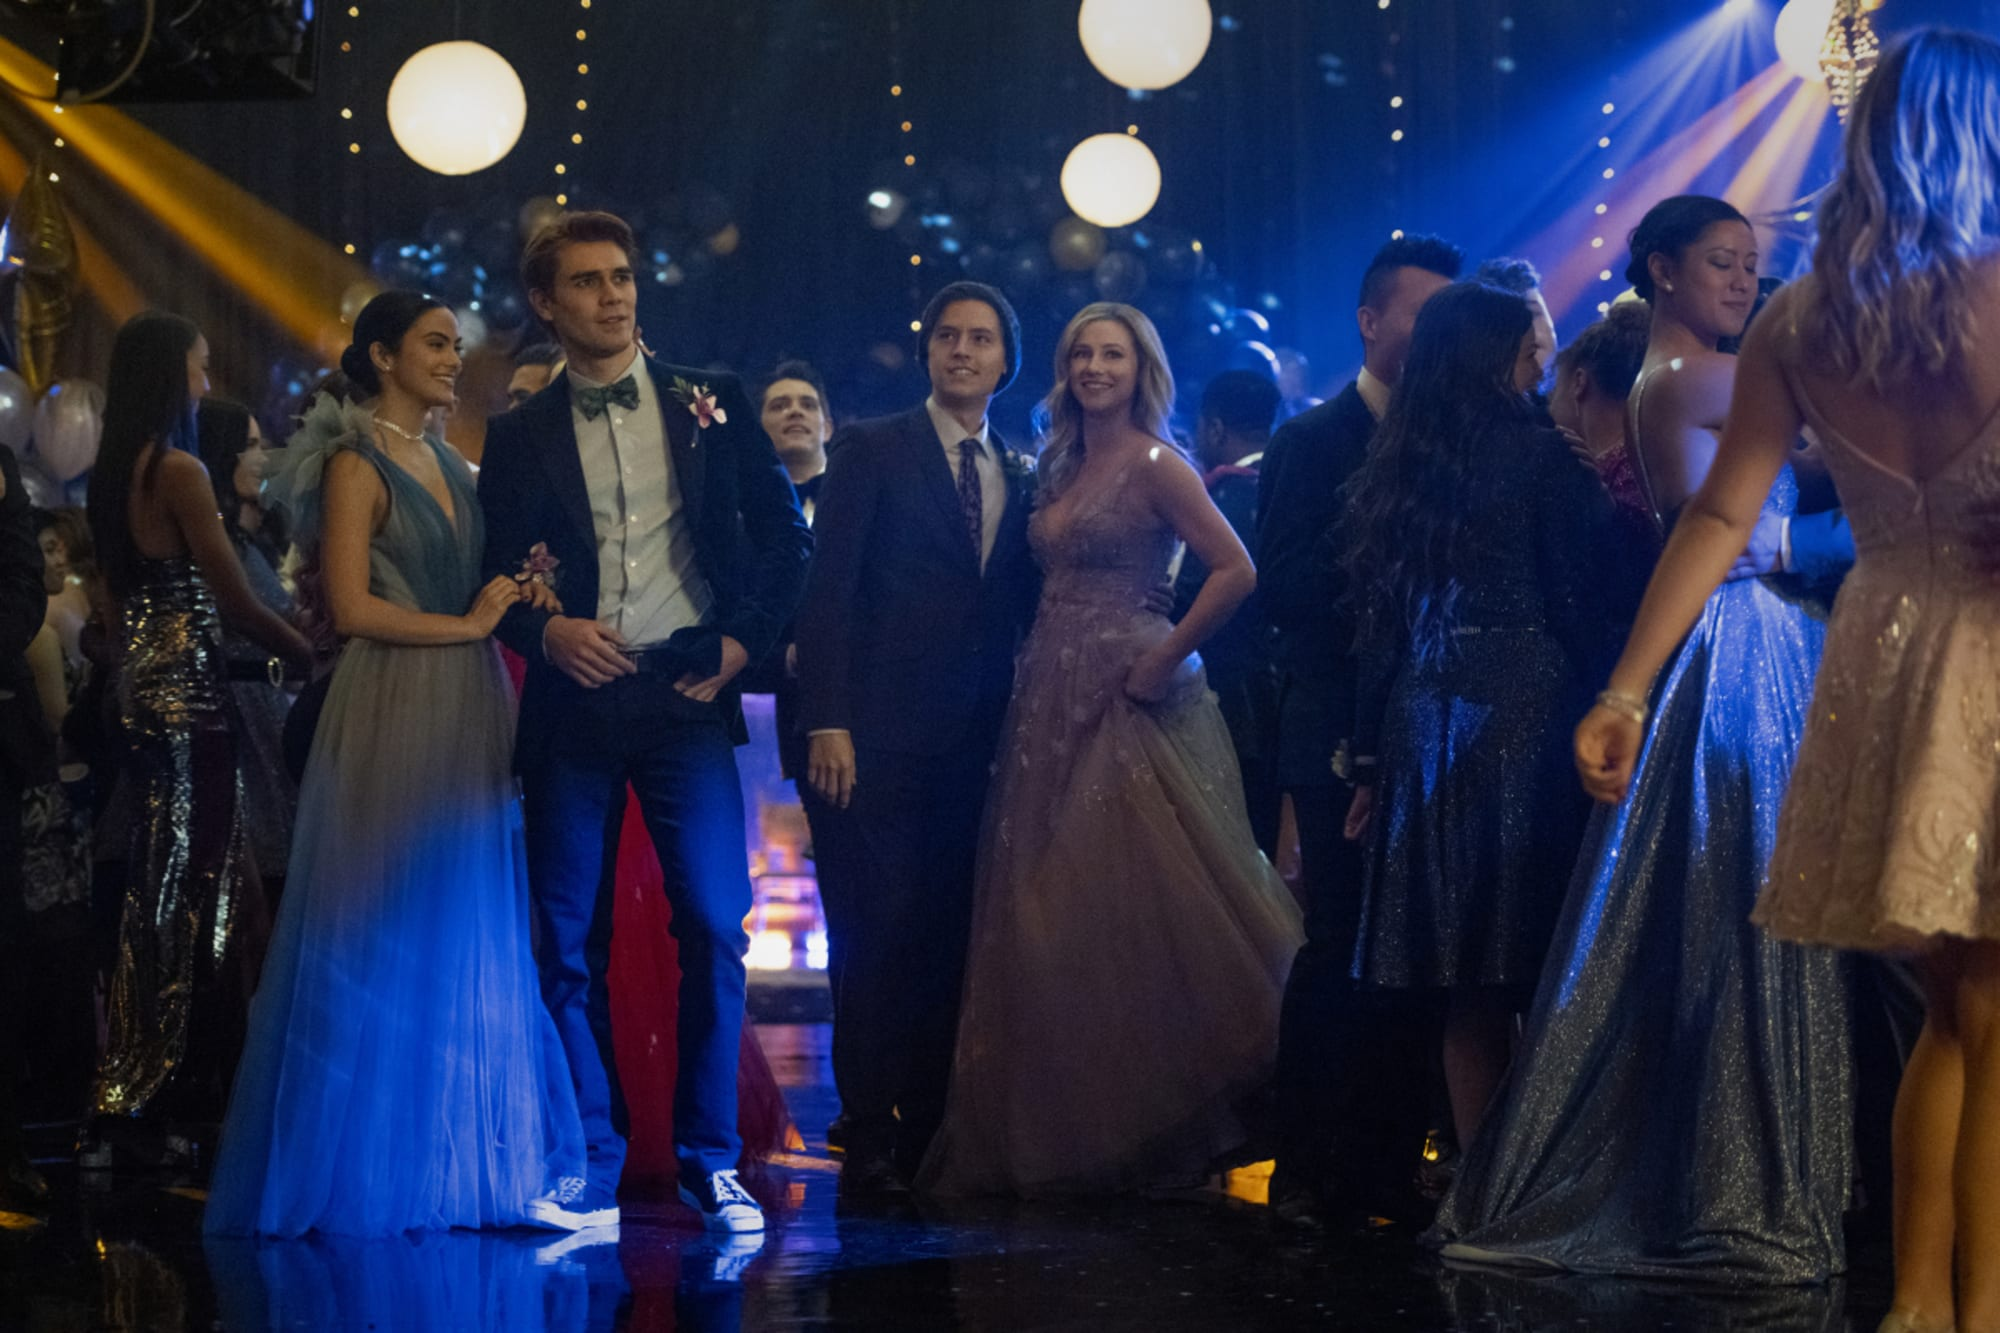 Watch Riverdale Season 5, Episode 1 online: Free CW live stream